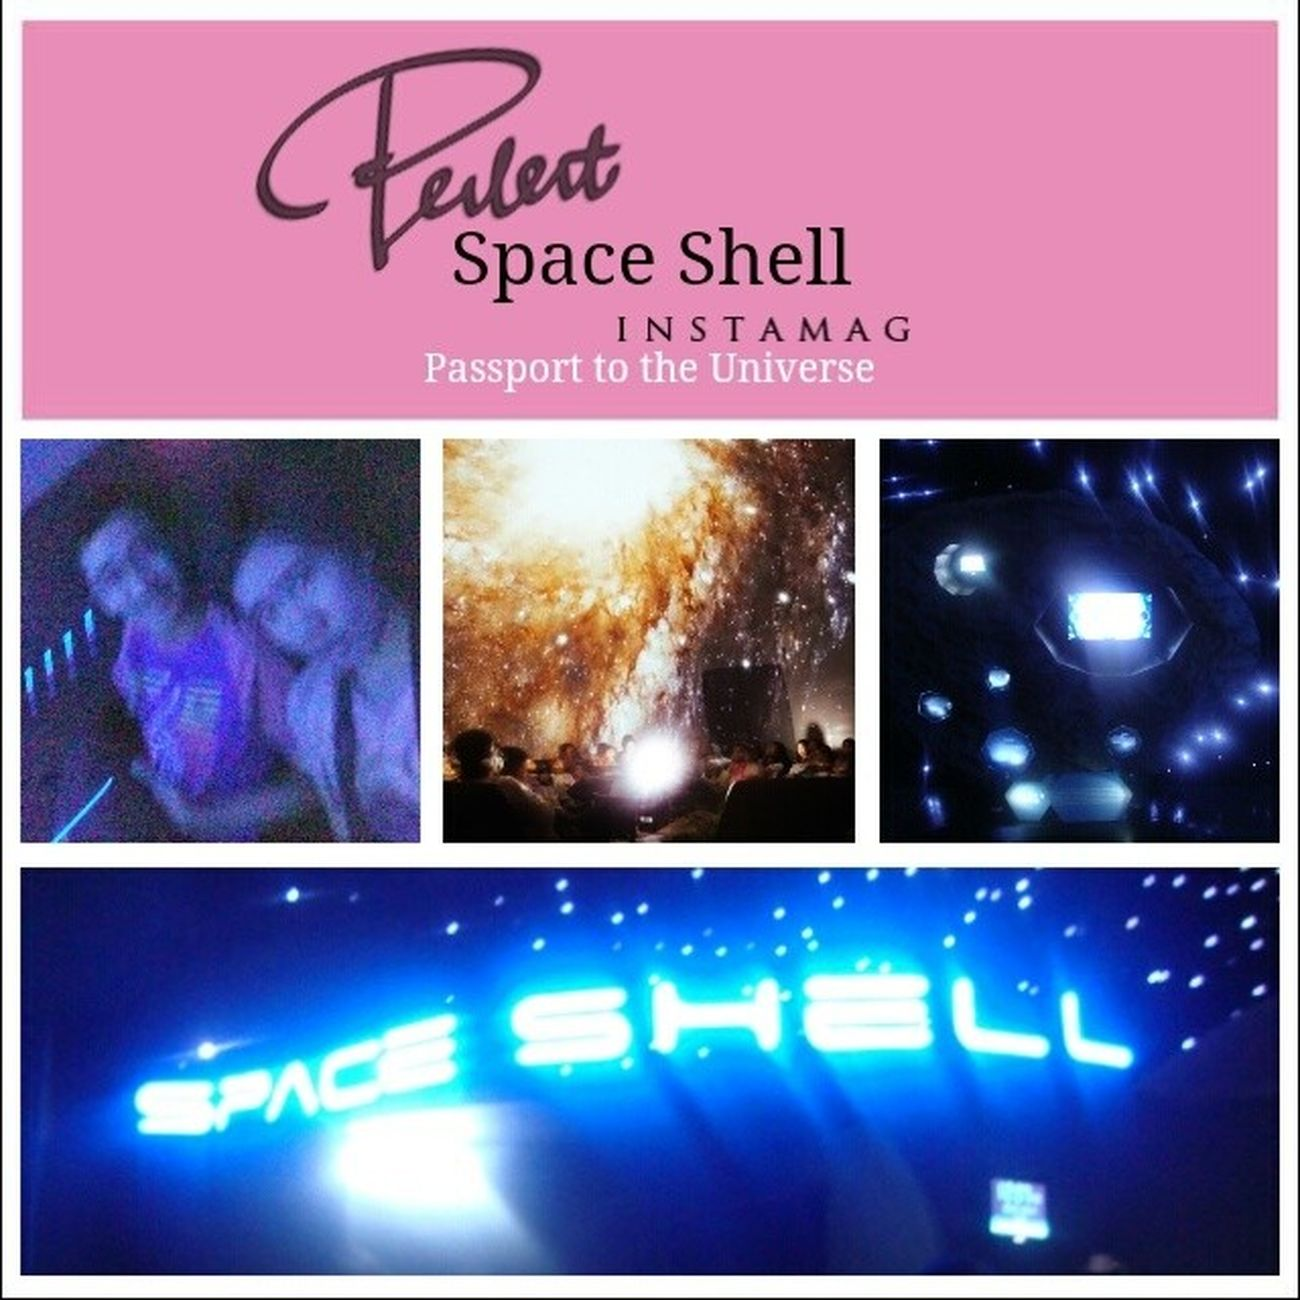 Took an unforgettable voyage from earth to the edge of the universe ?? SpaceShell